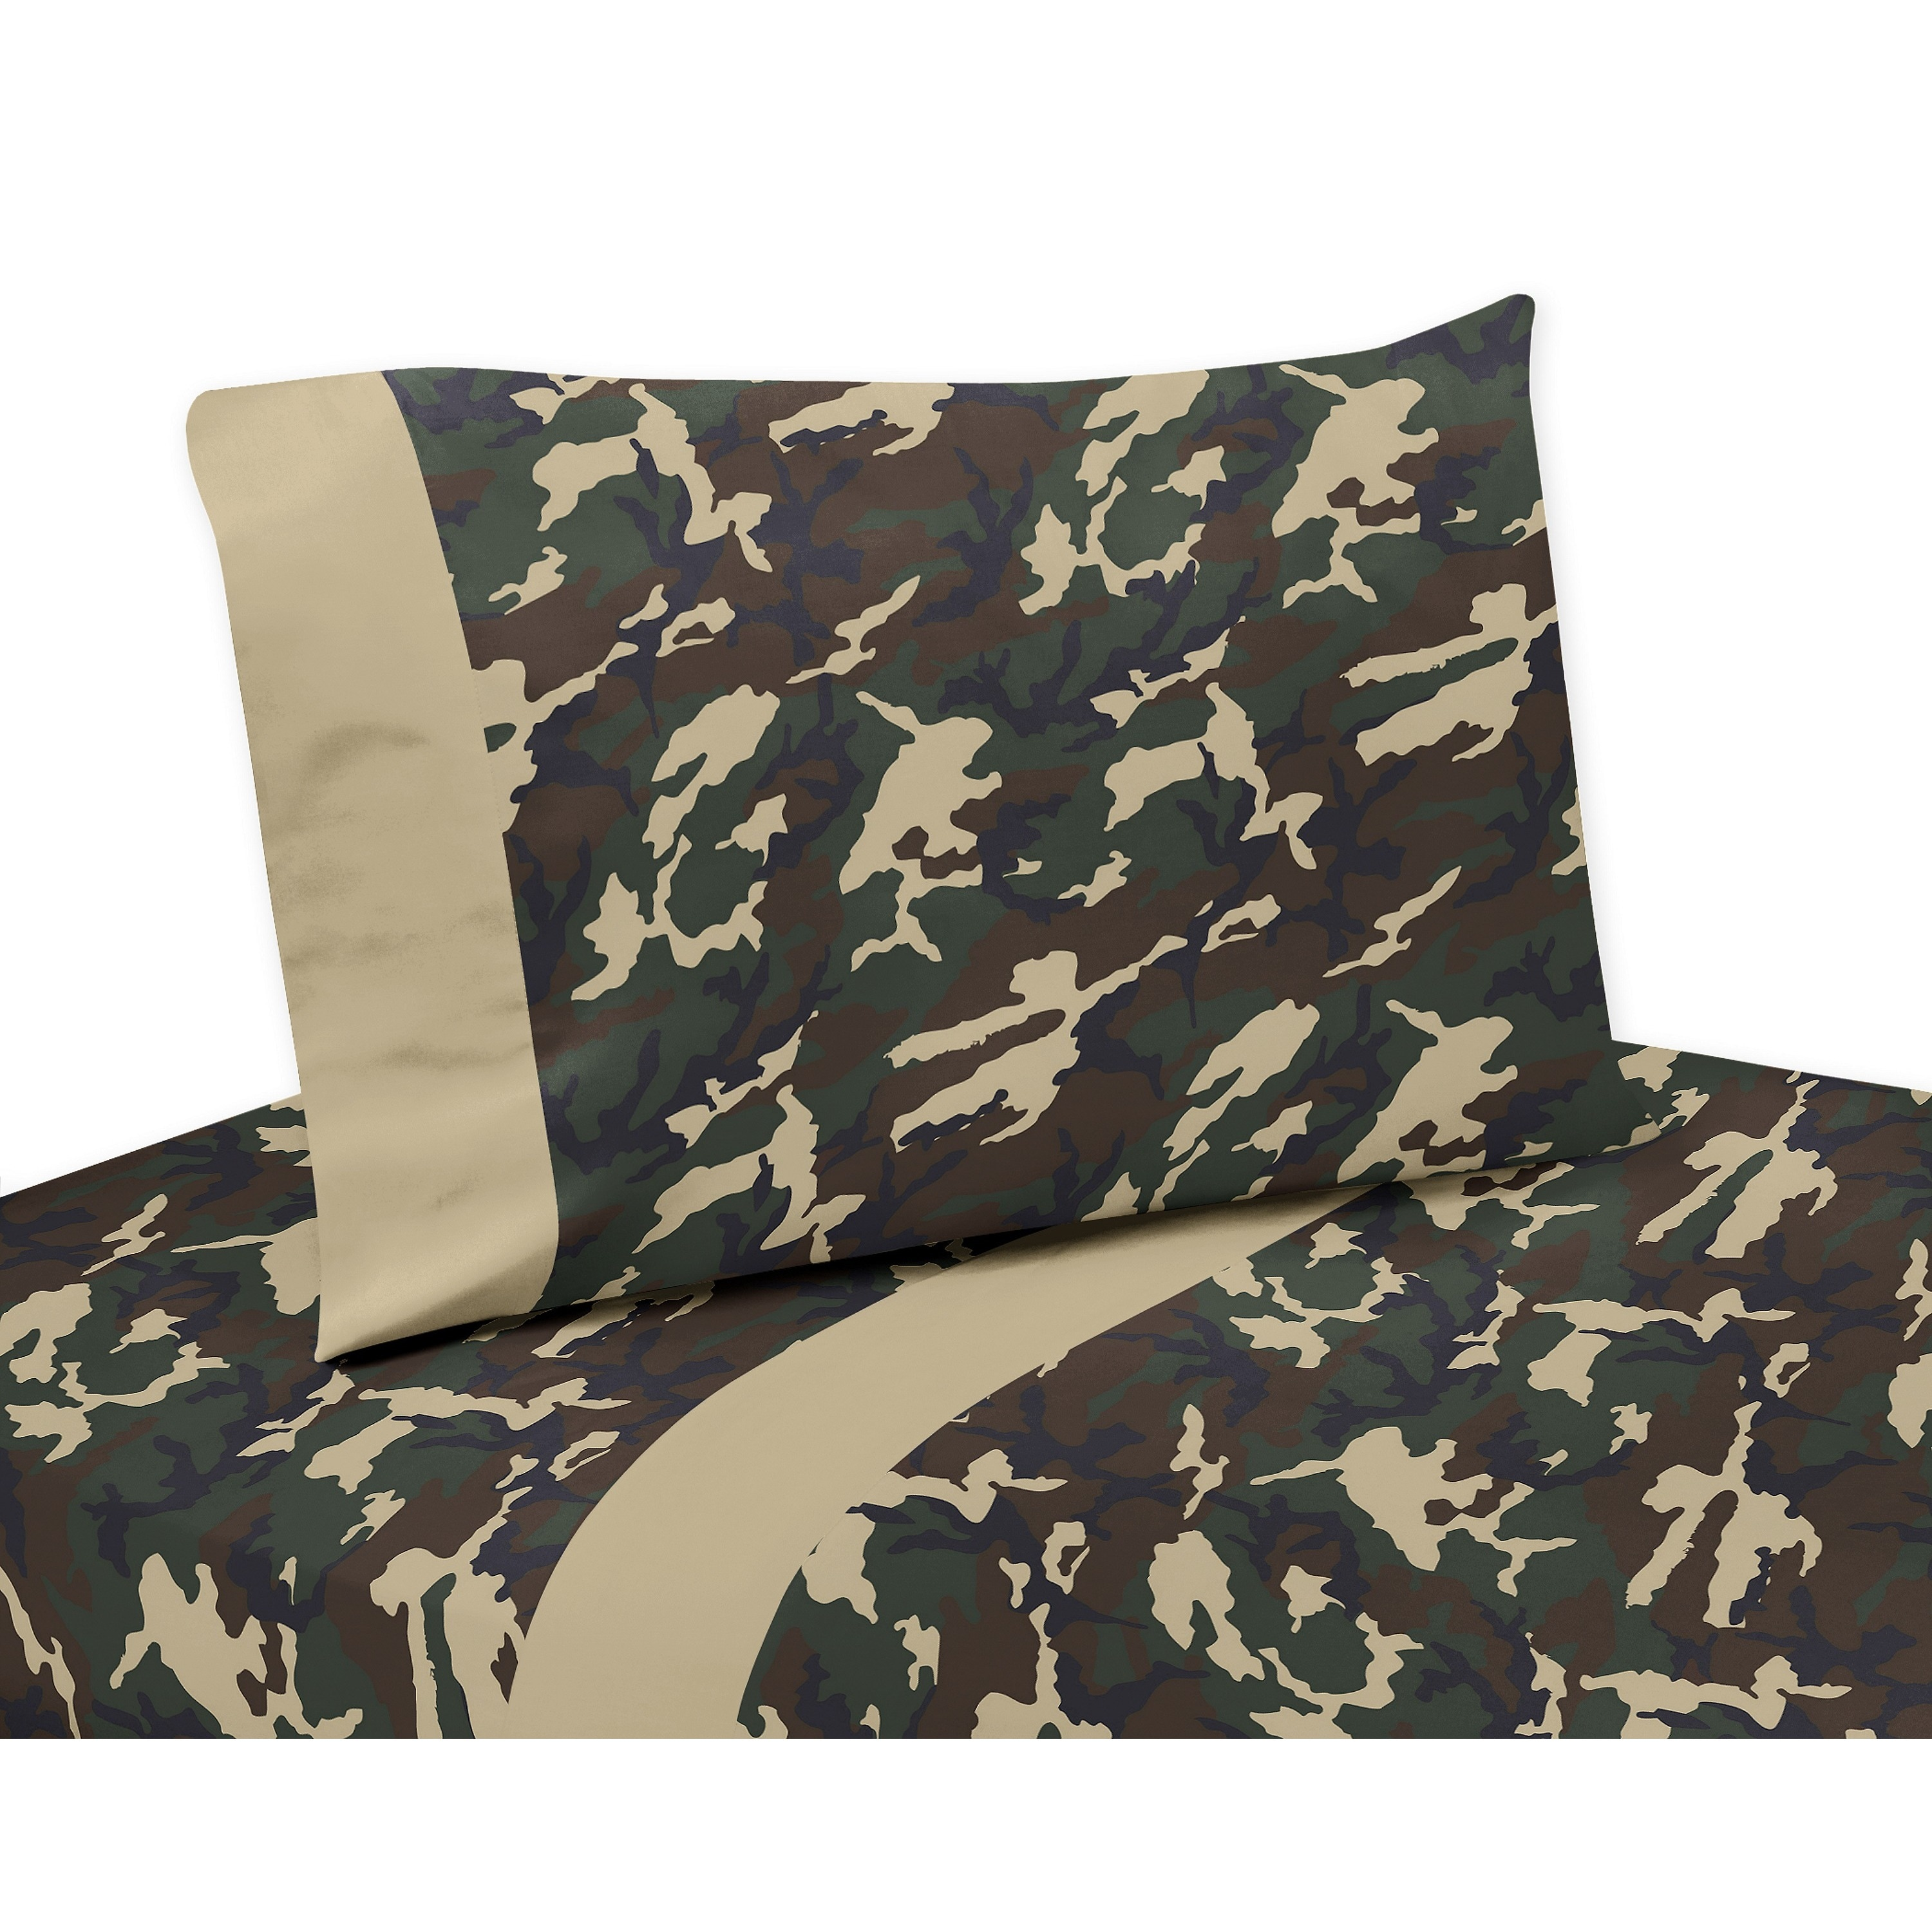 Kids Teens At Home Boys Twin Xl Full Queen Bed Blue Tan Camo Camouflage 4 Pc Quilt Coverlet Set Rudisbakery Com